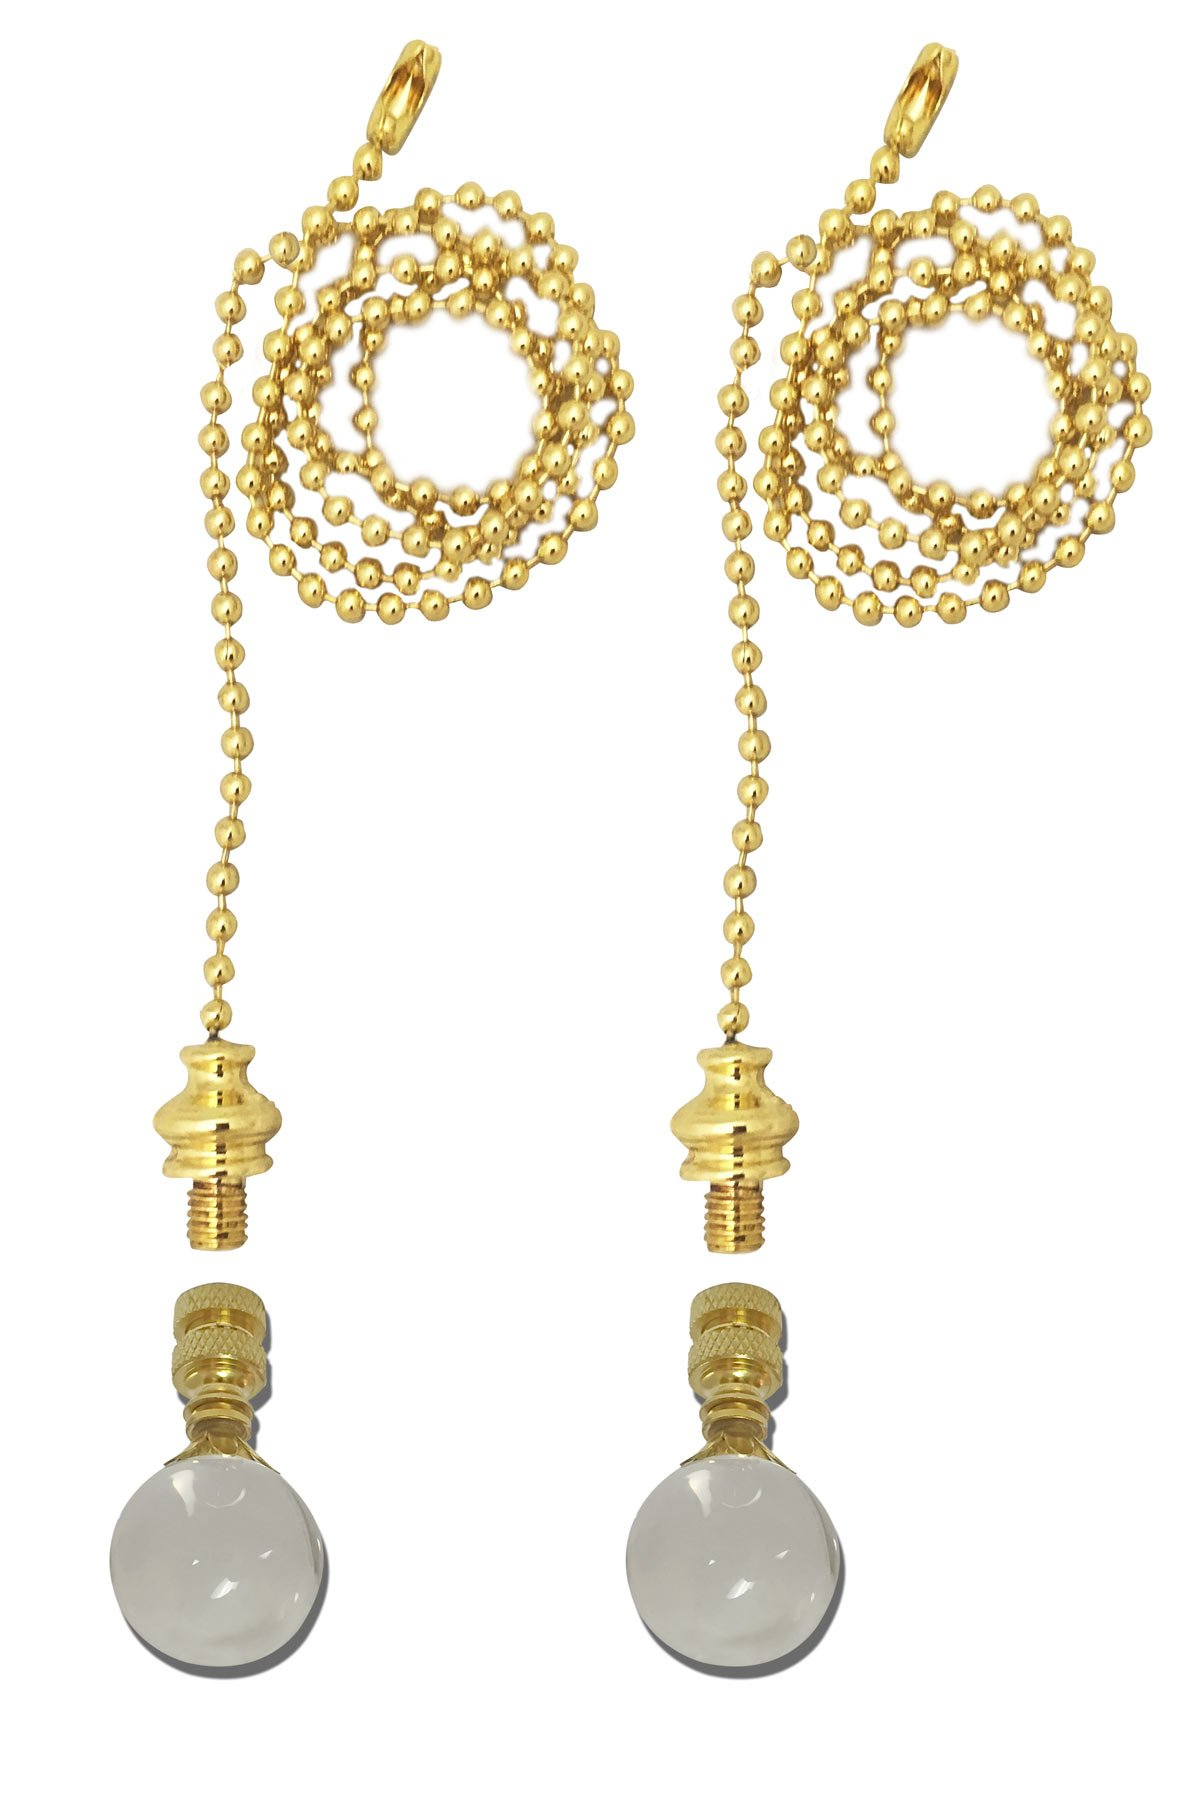 Royal Designs Fan Pull Chain with Large Clear Crystal Finial - Polished Brass - Set of 2